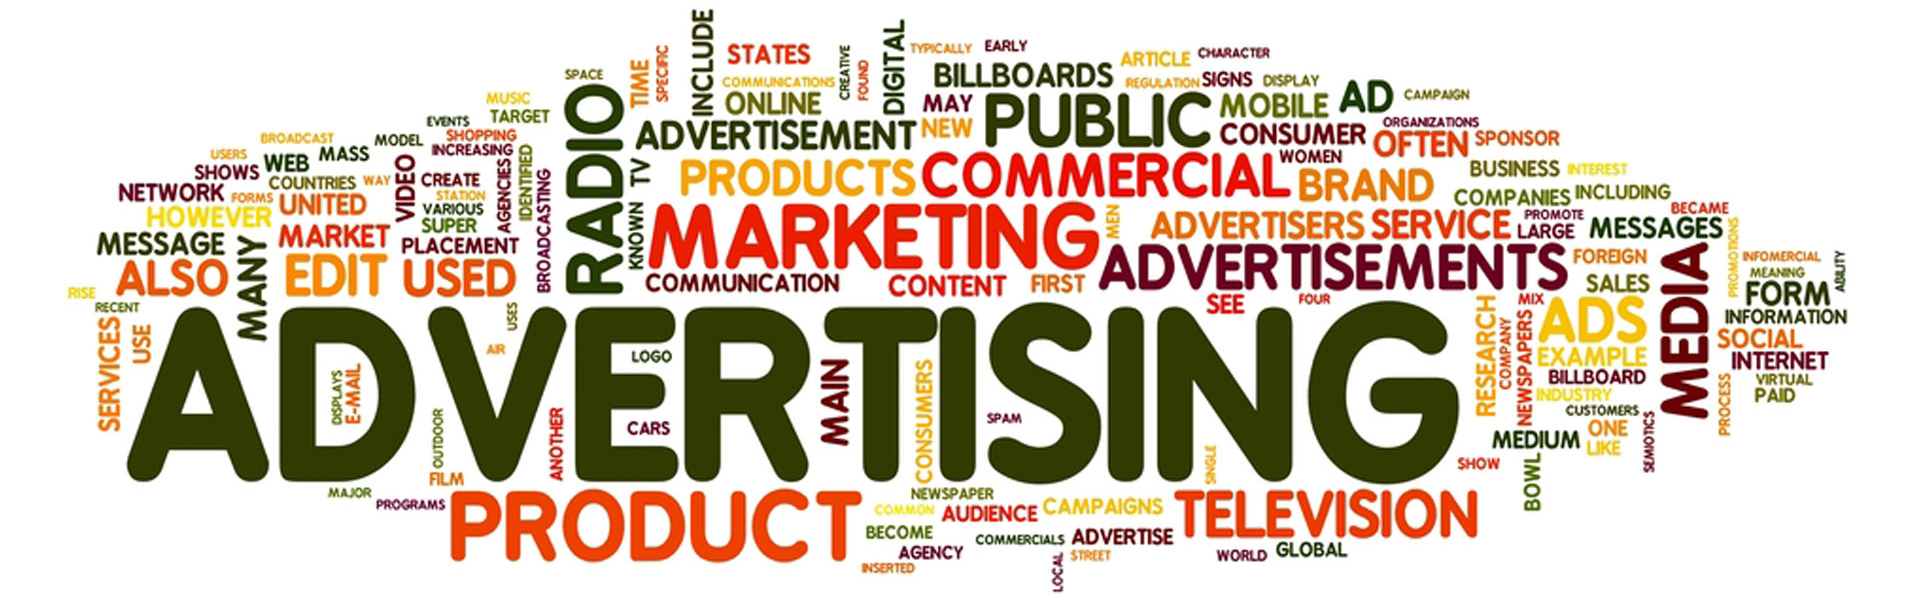 mass communications connecting public relations advertising Mass communication and journalism advertising and public relations: challenges and implications.